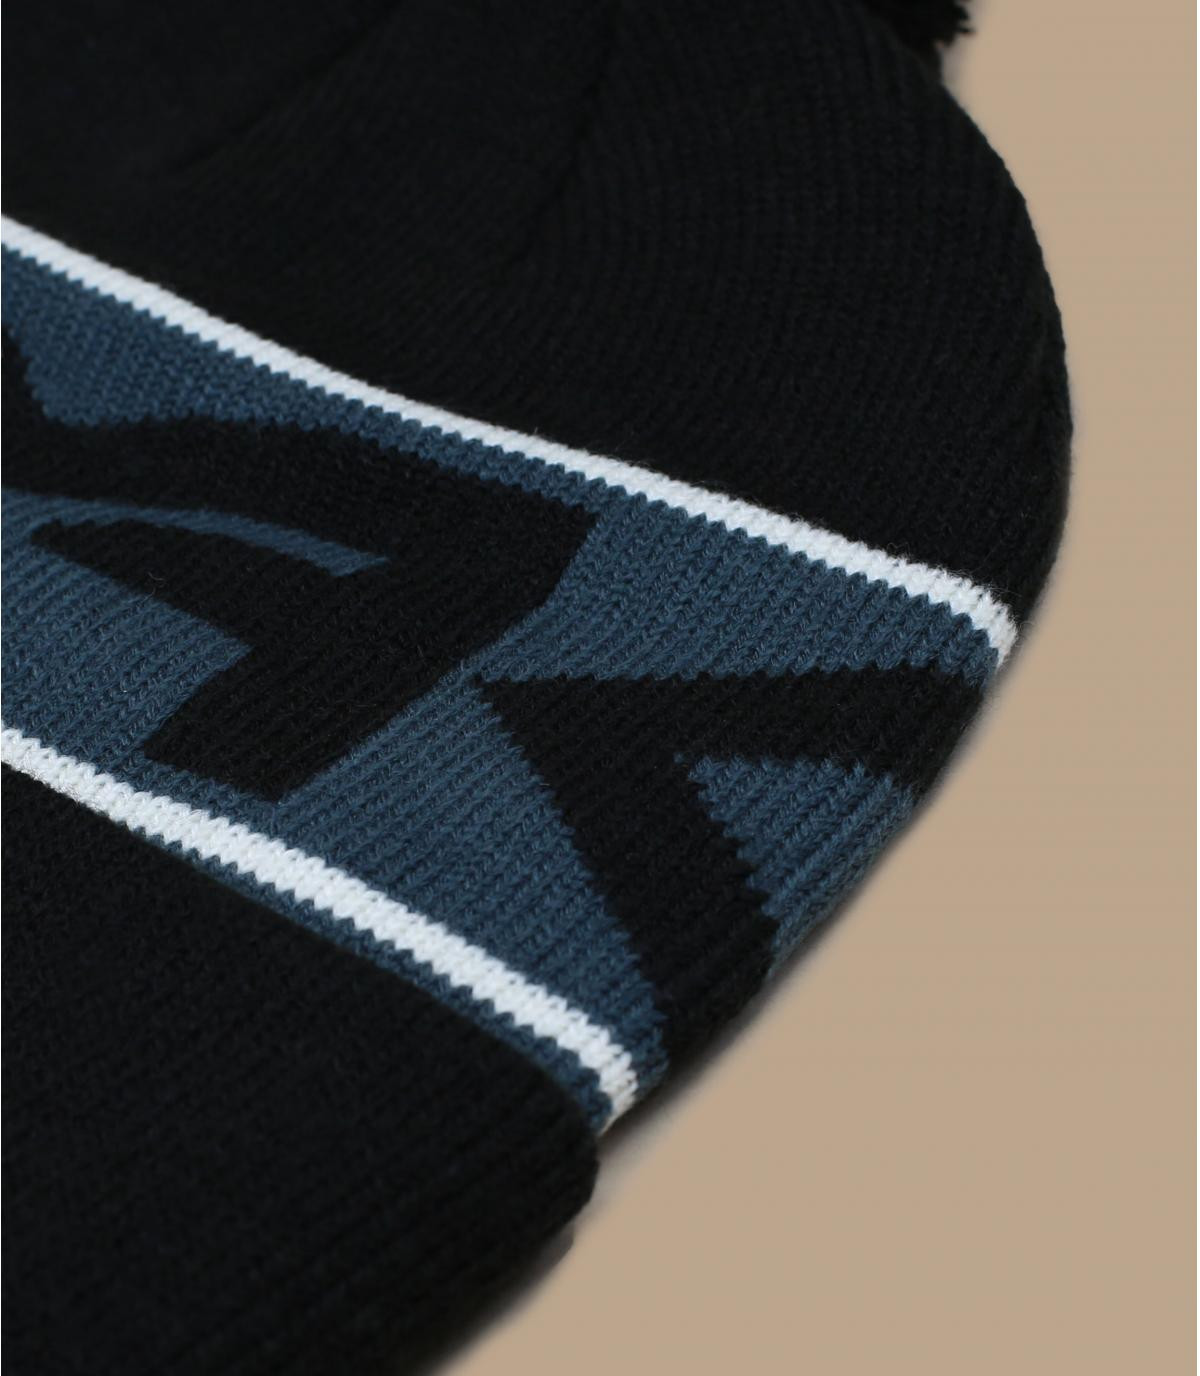 Details Factory Cuff Beanie blackout - afbeeling 3